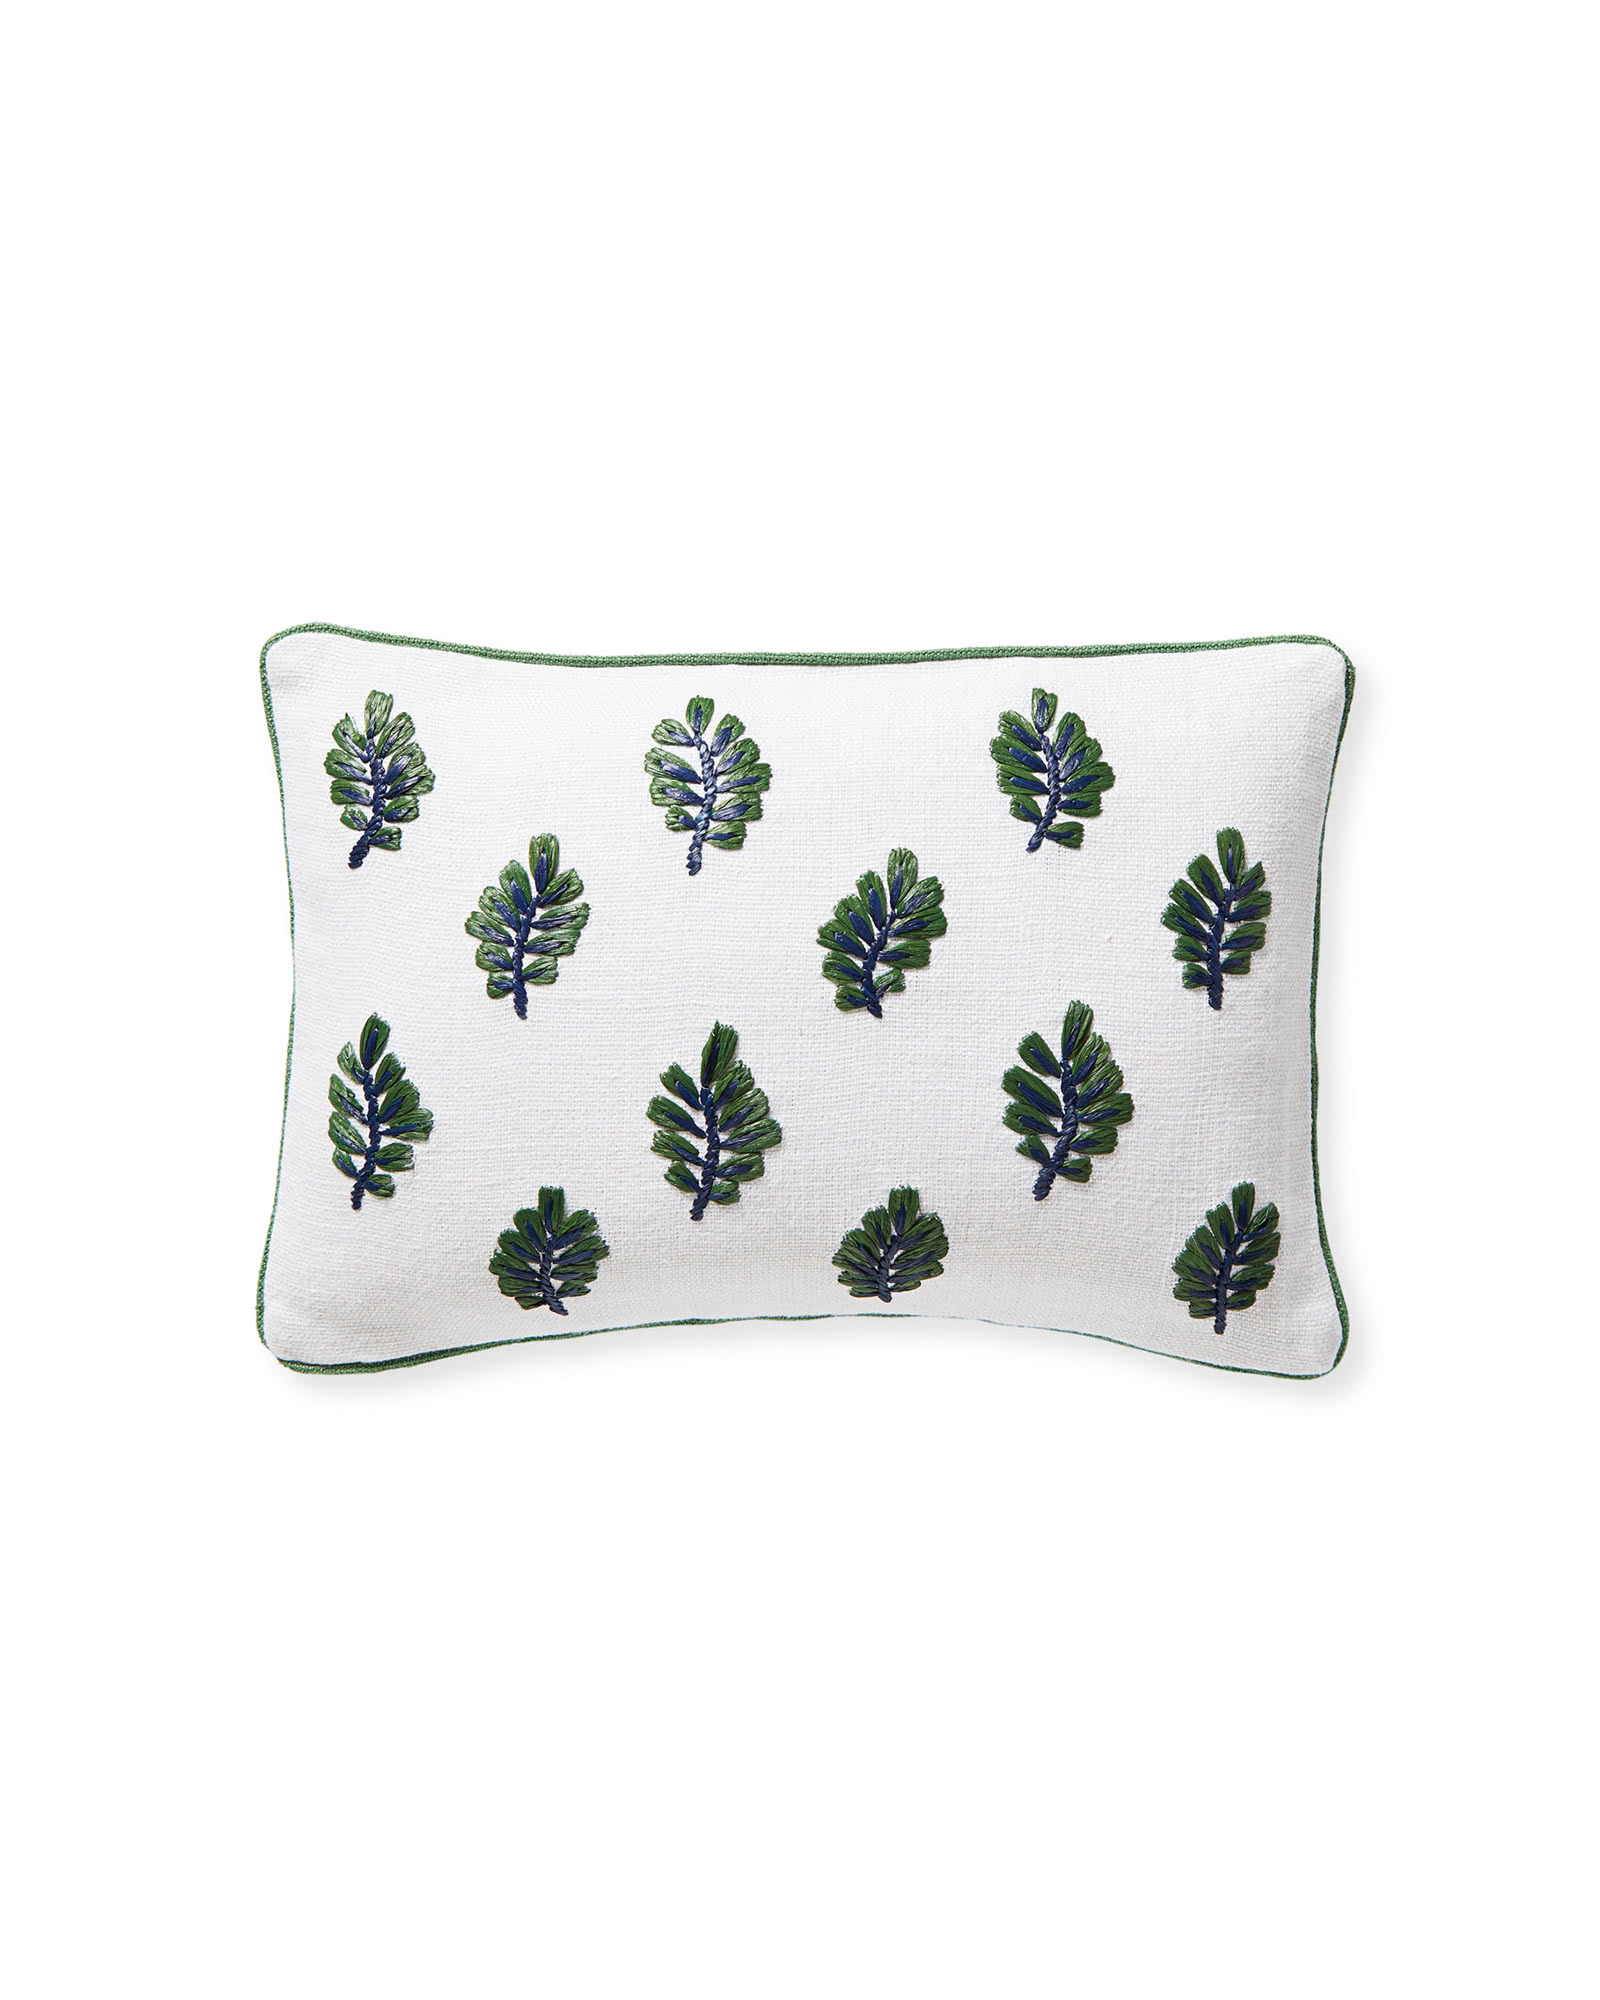 Blossom Pillow Cover, Navy/Moss